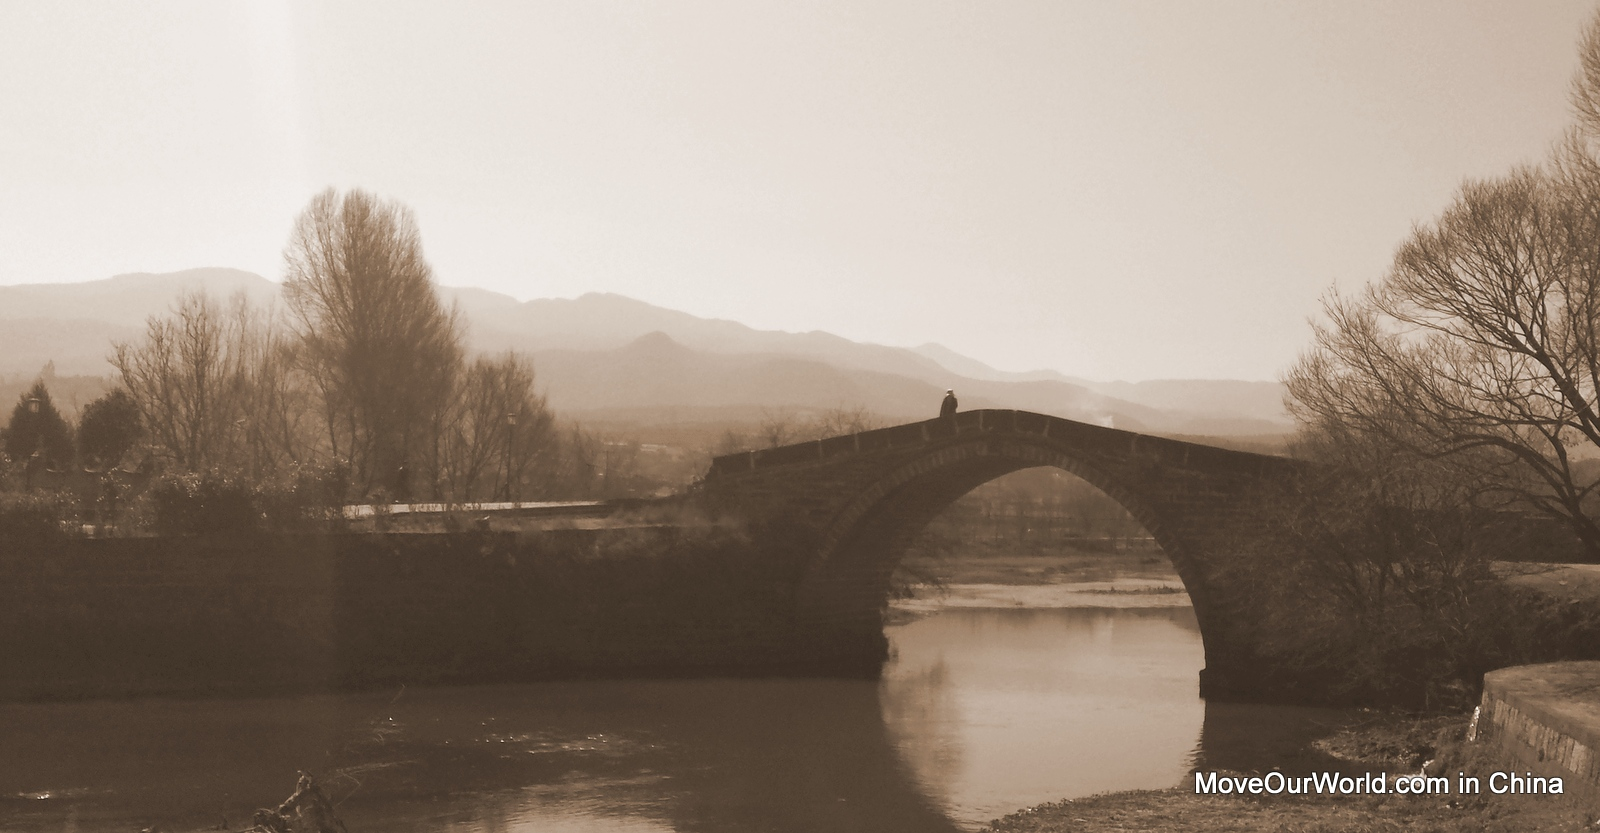 Shaxi bridge